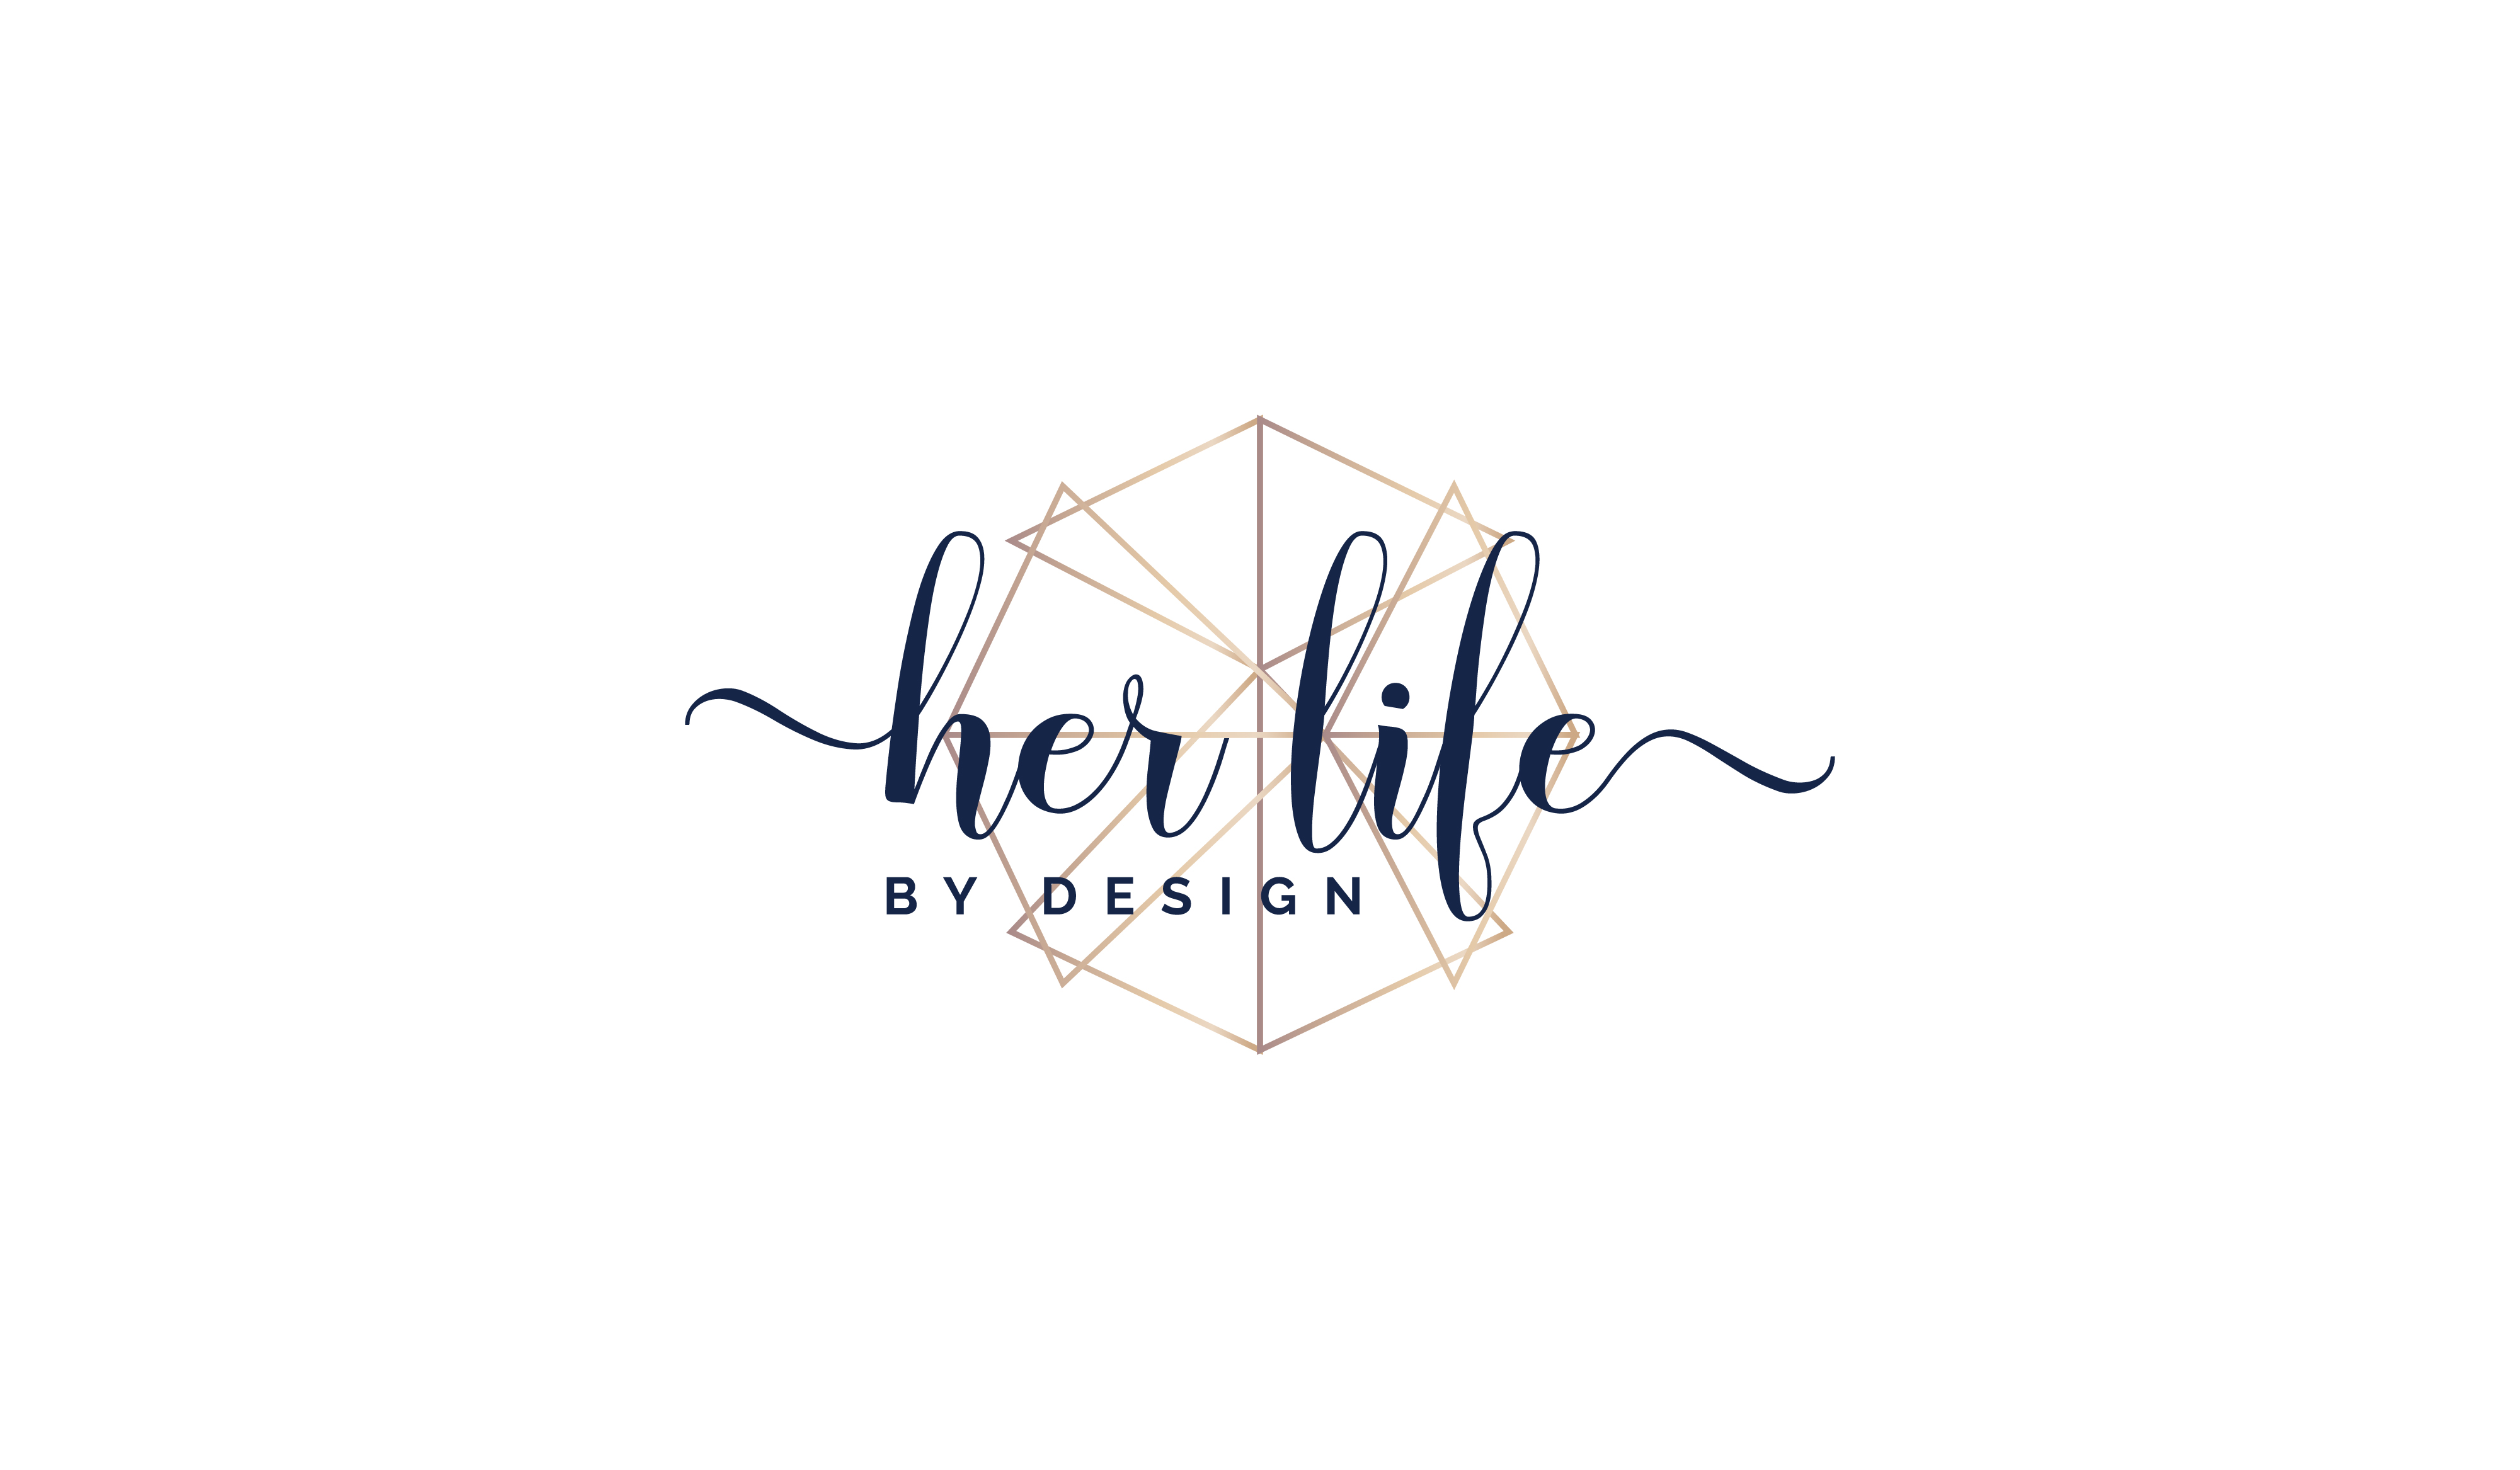 Her Life by Design